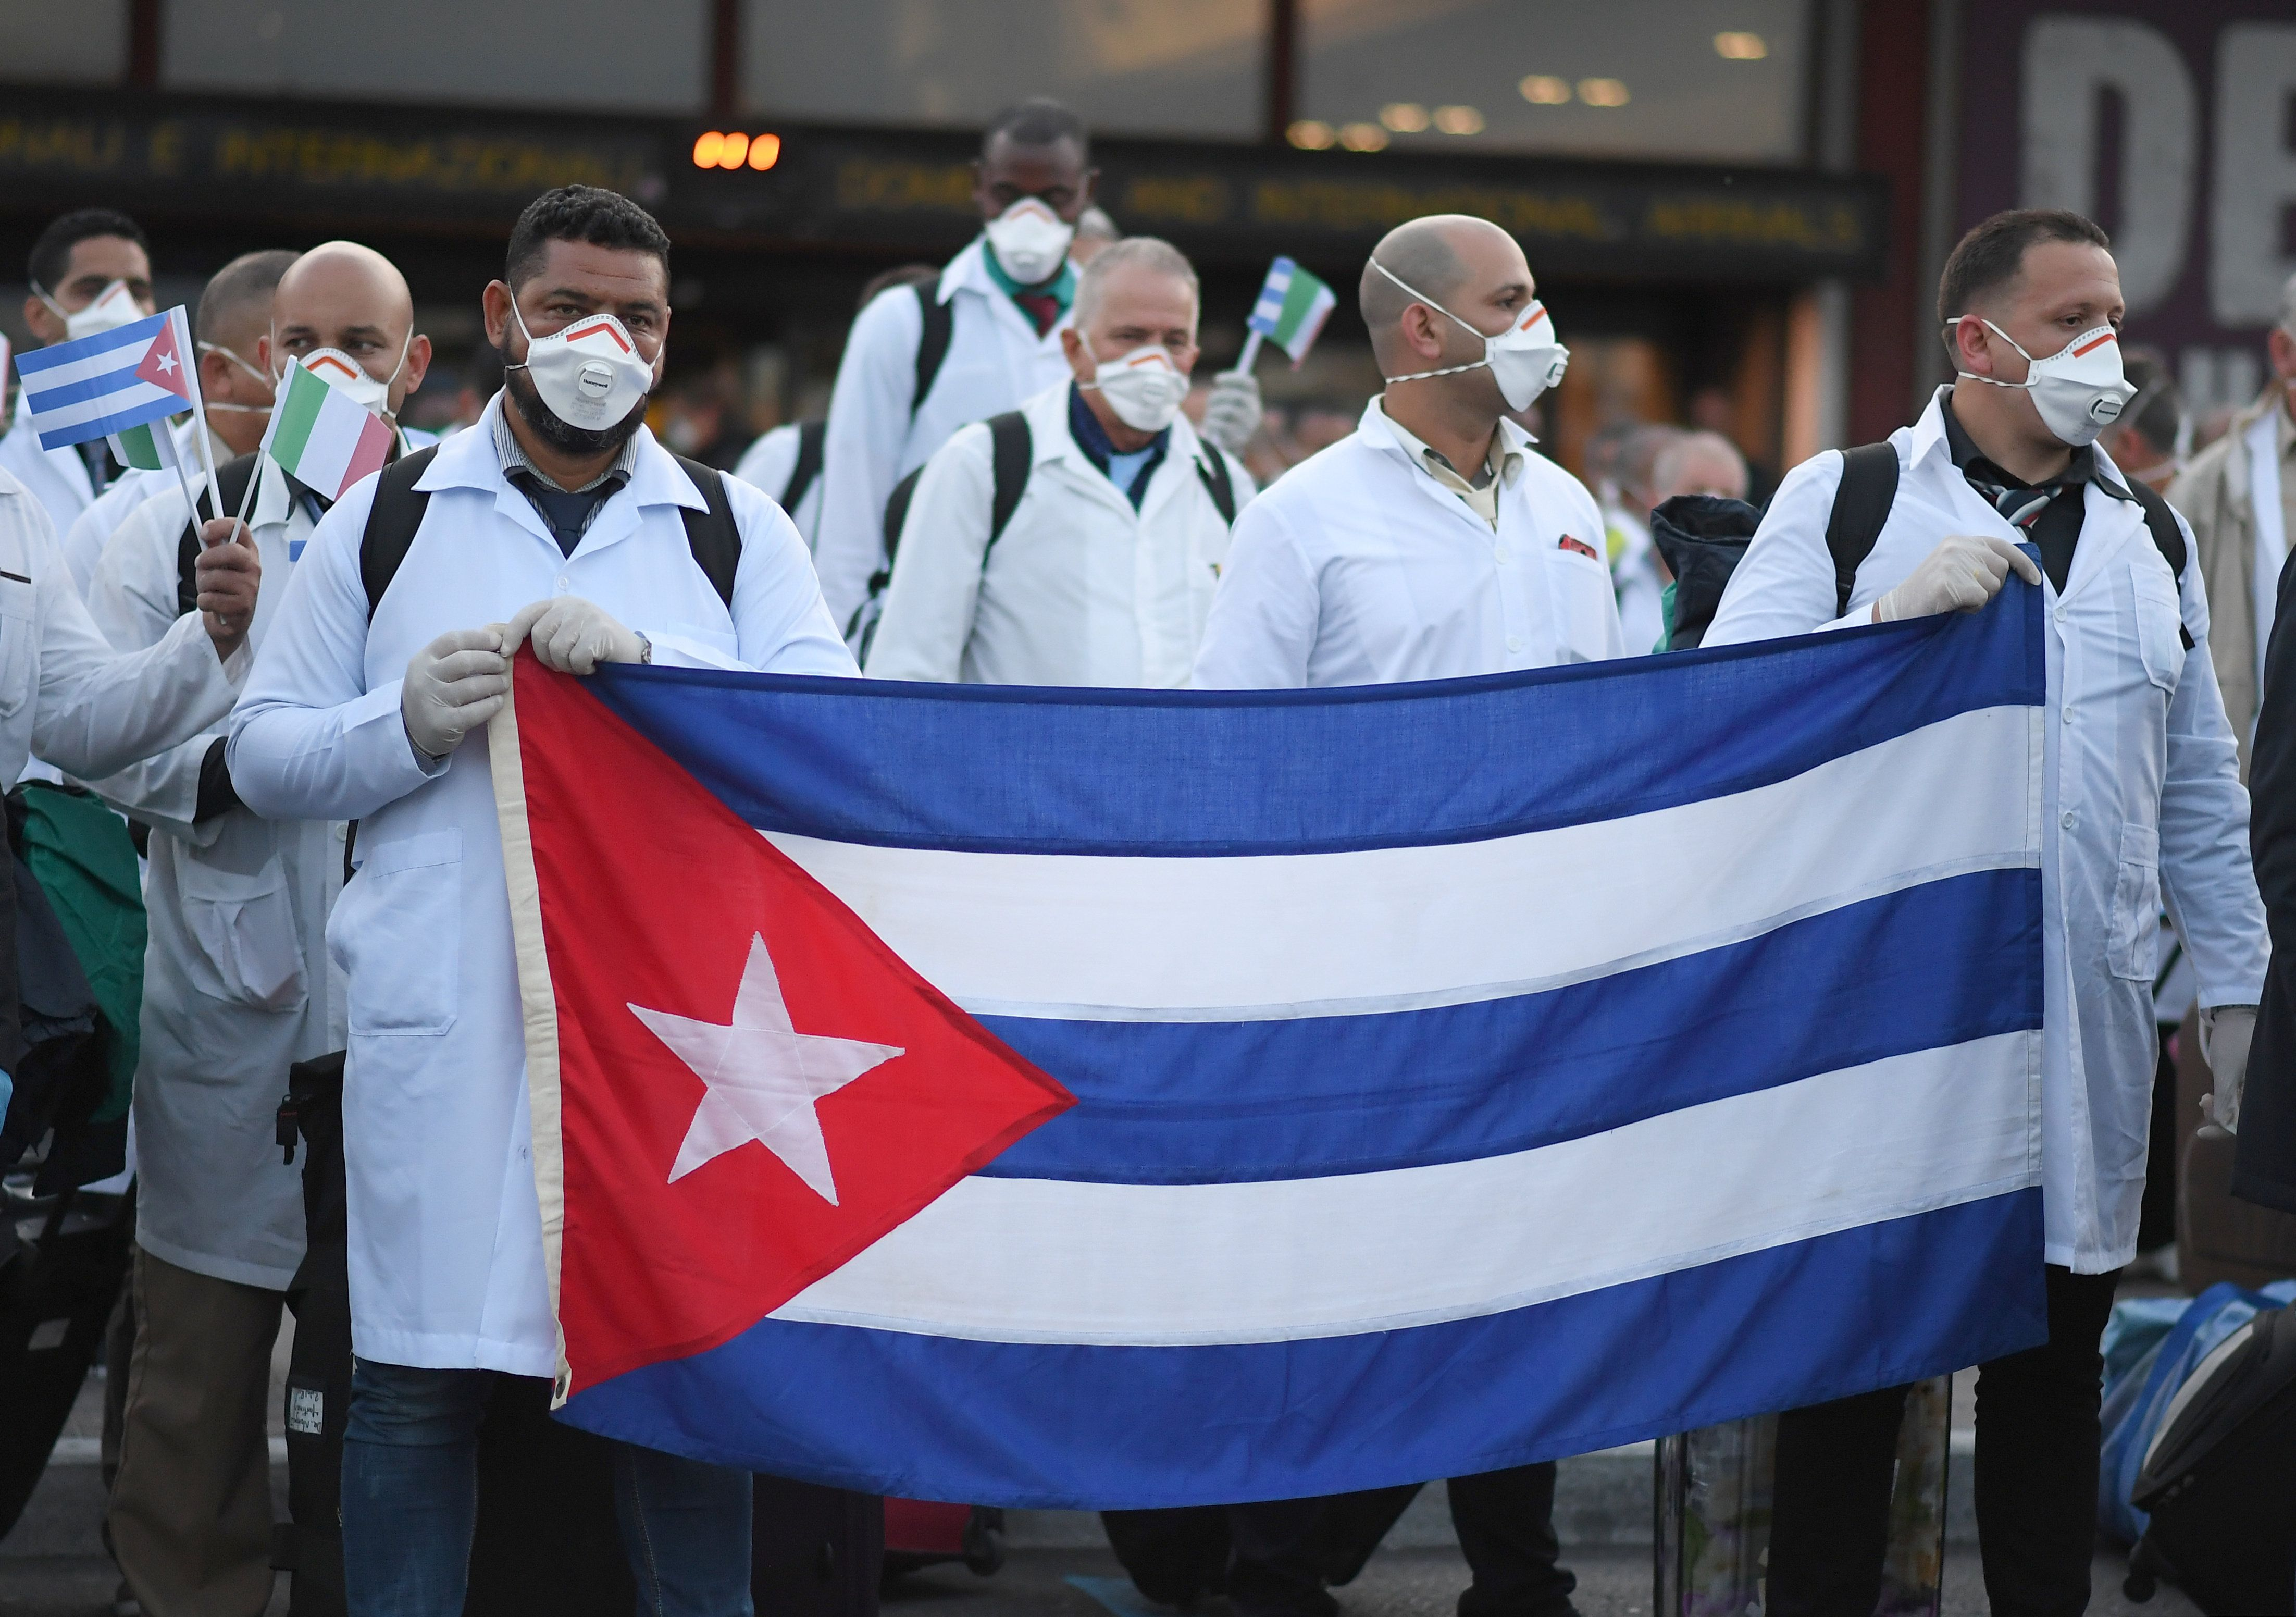 Hard Numbers: Cuban doctors abroad, vaccine promise, China's pressure on the EU, high times in California